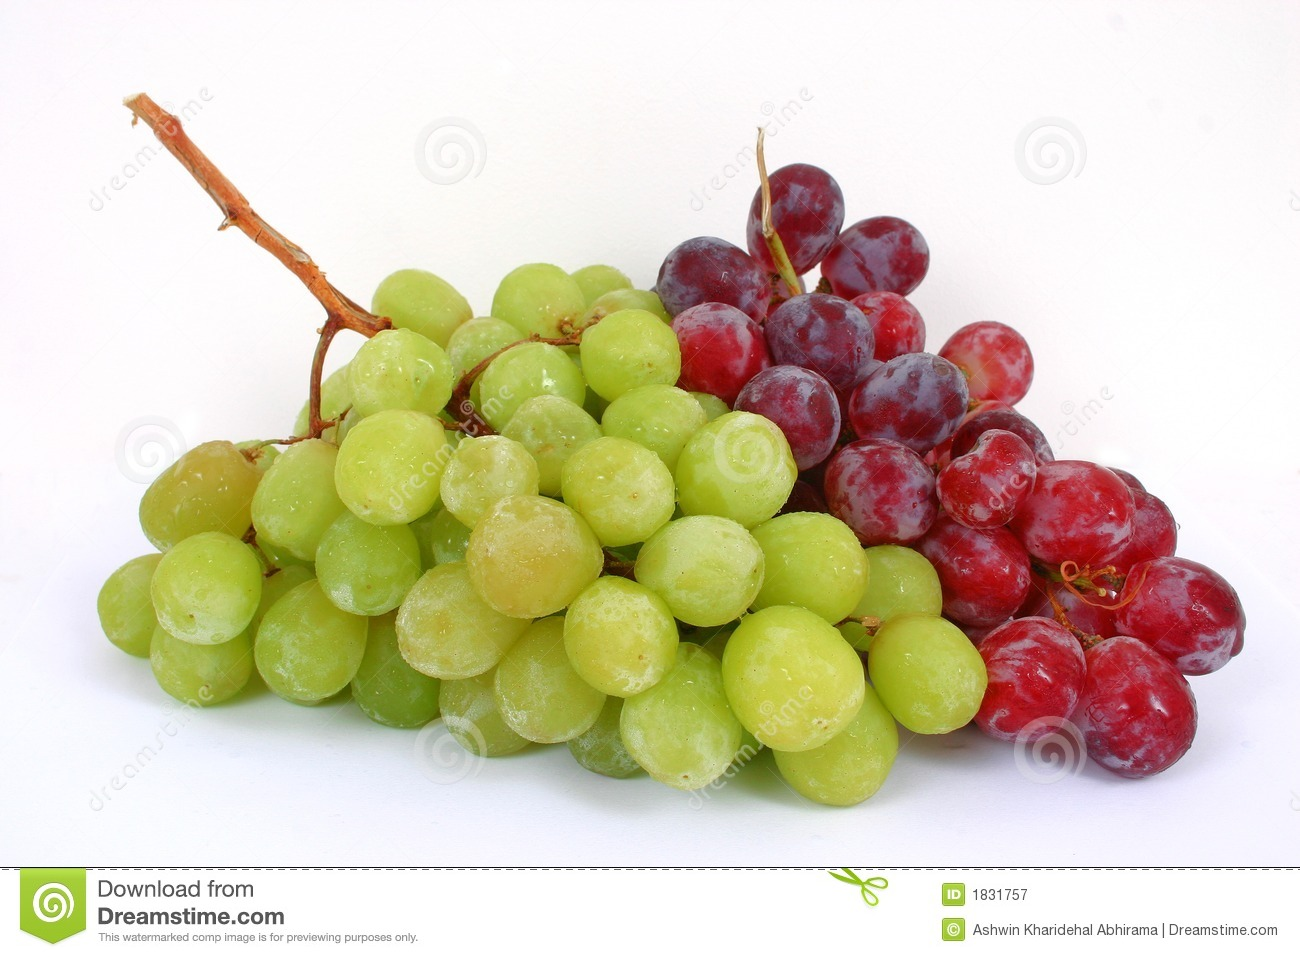 bunch of green and red grapes isolated in a white background.